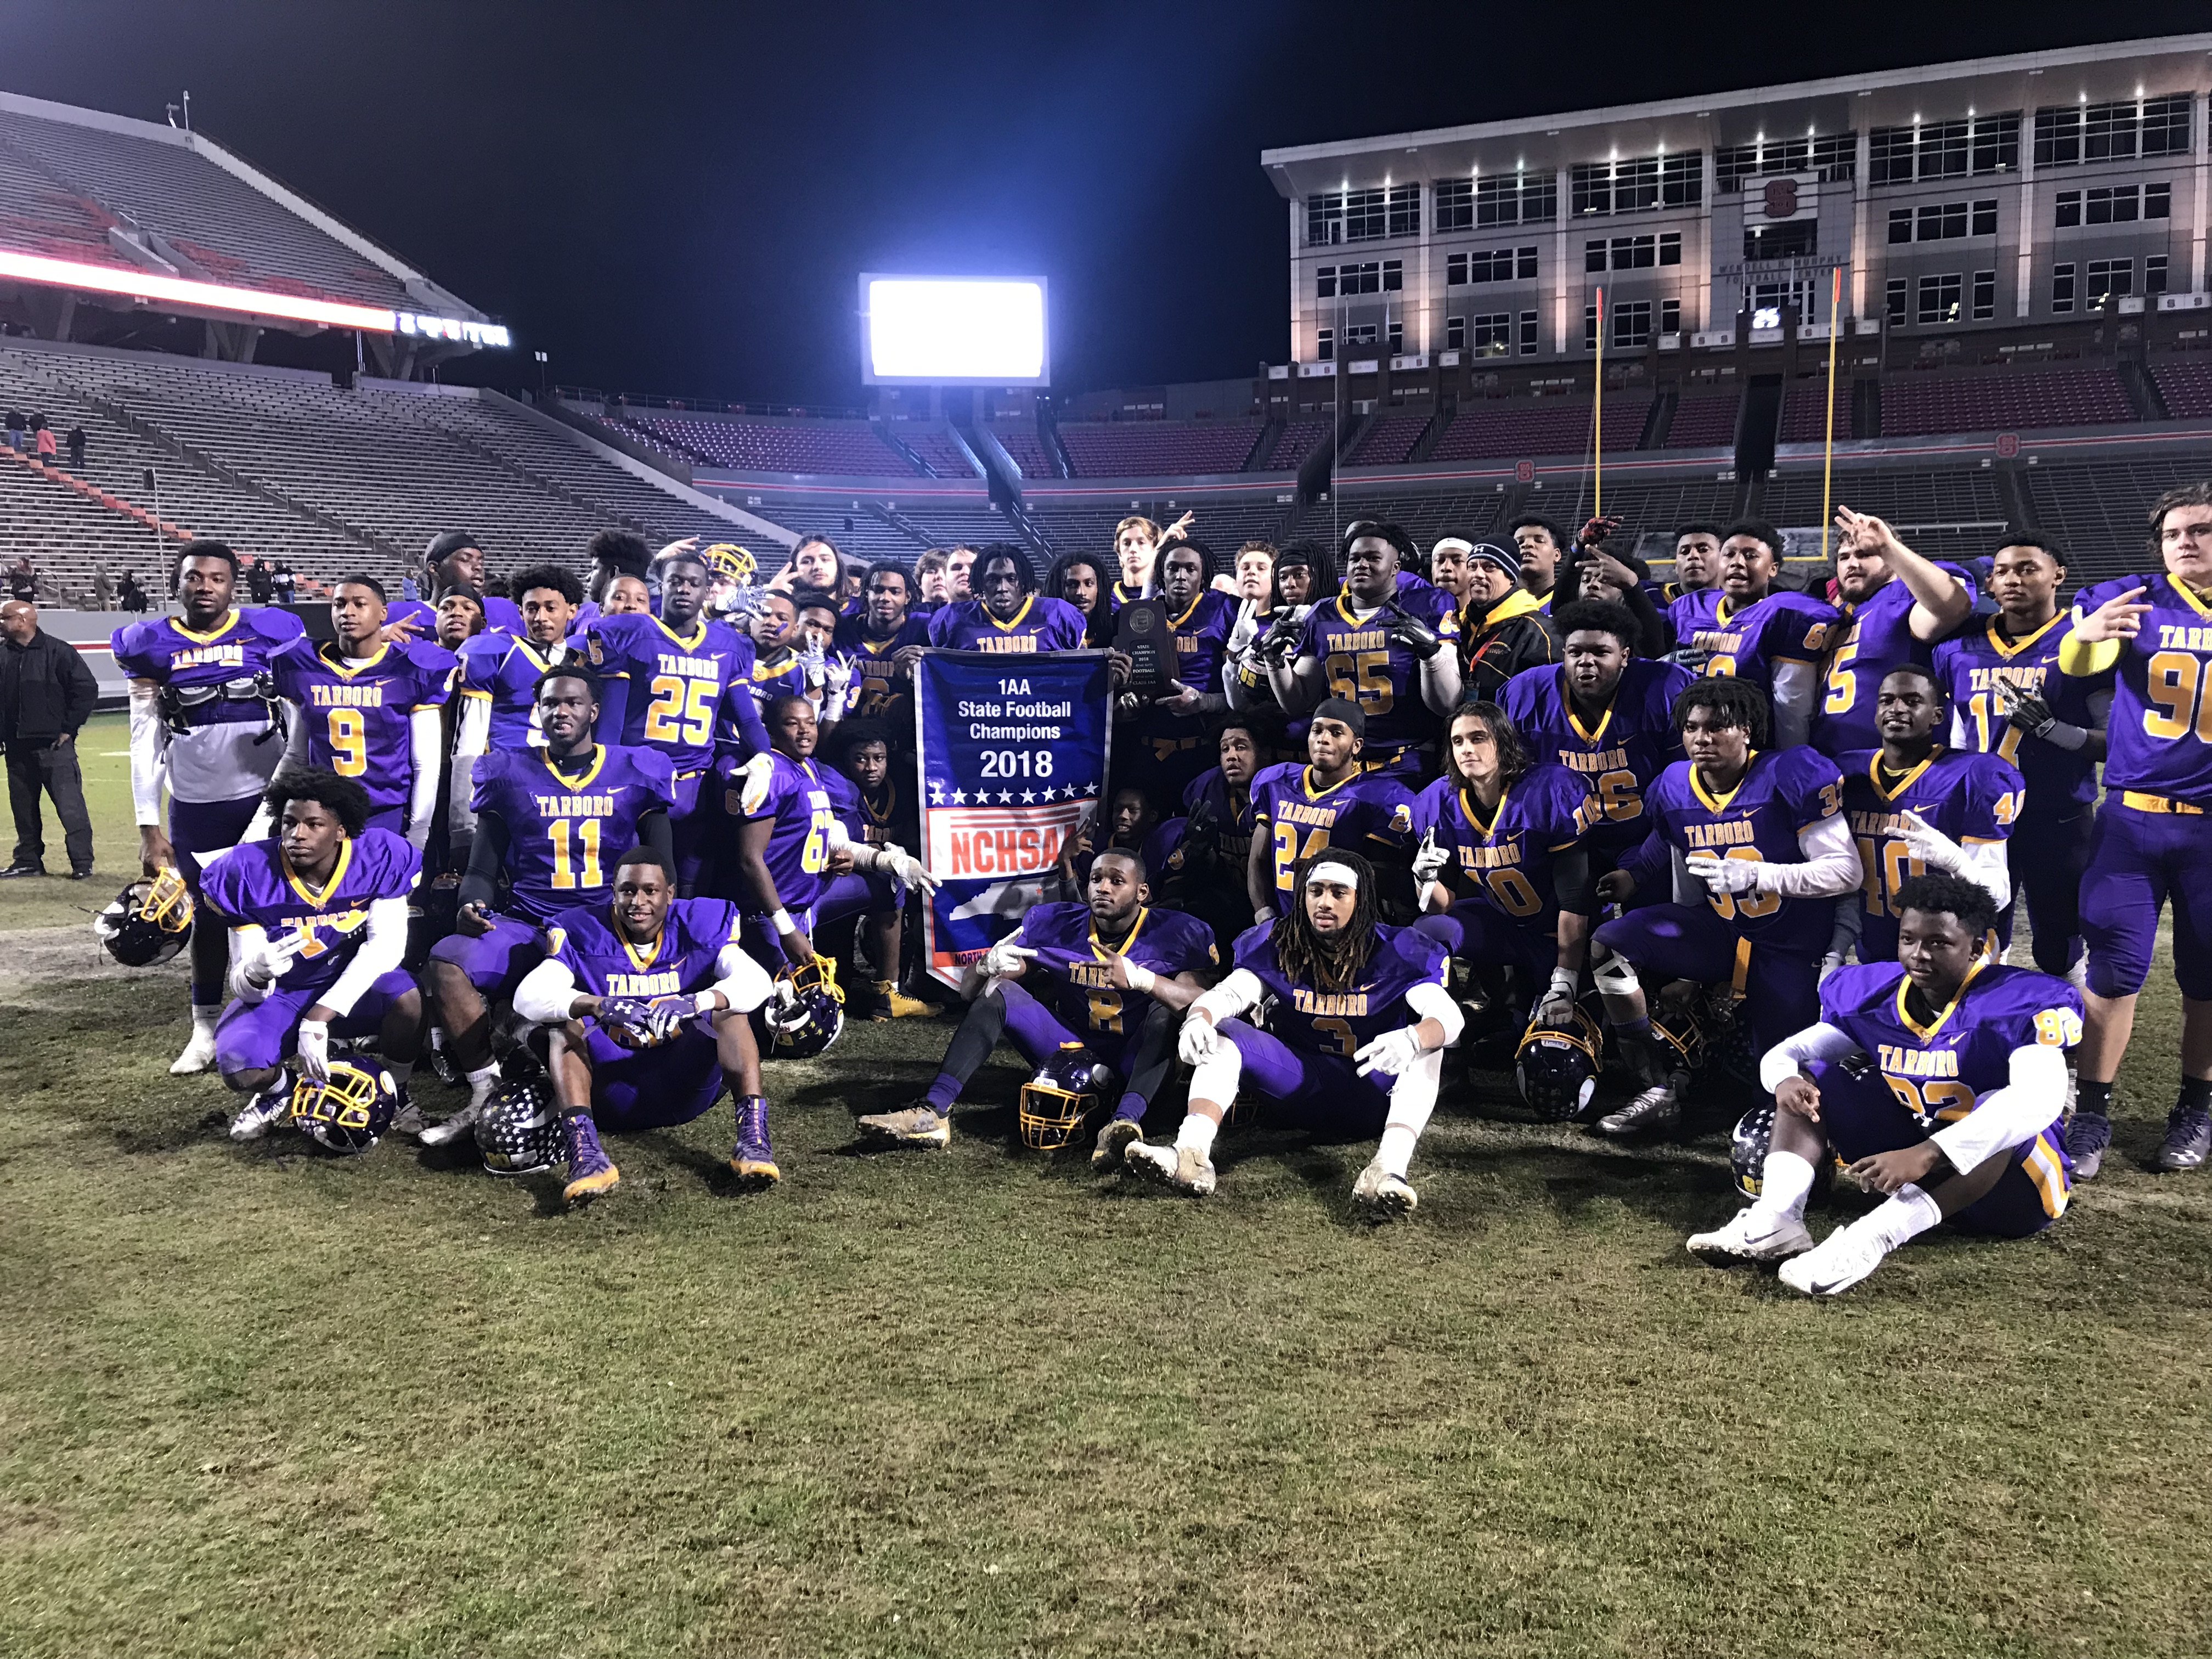 Hs Football State Championships Tarboro Rolls Past E Surry In 1aa